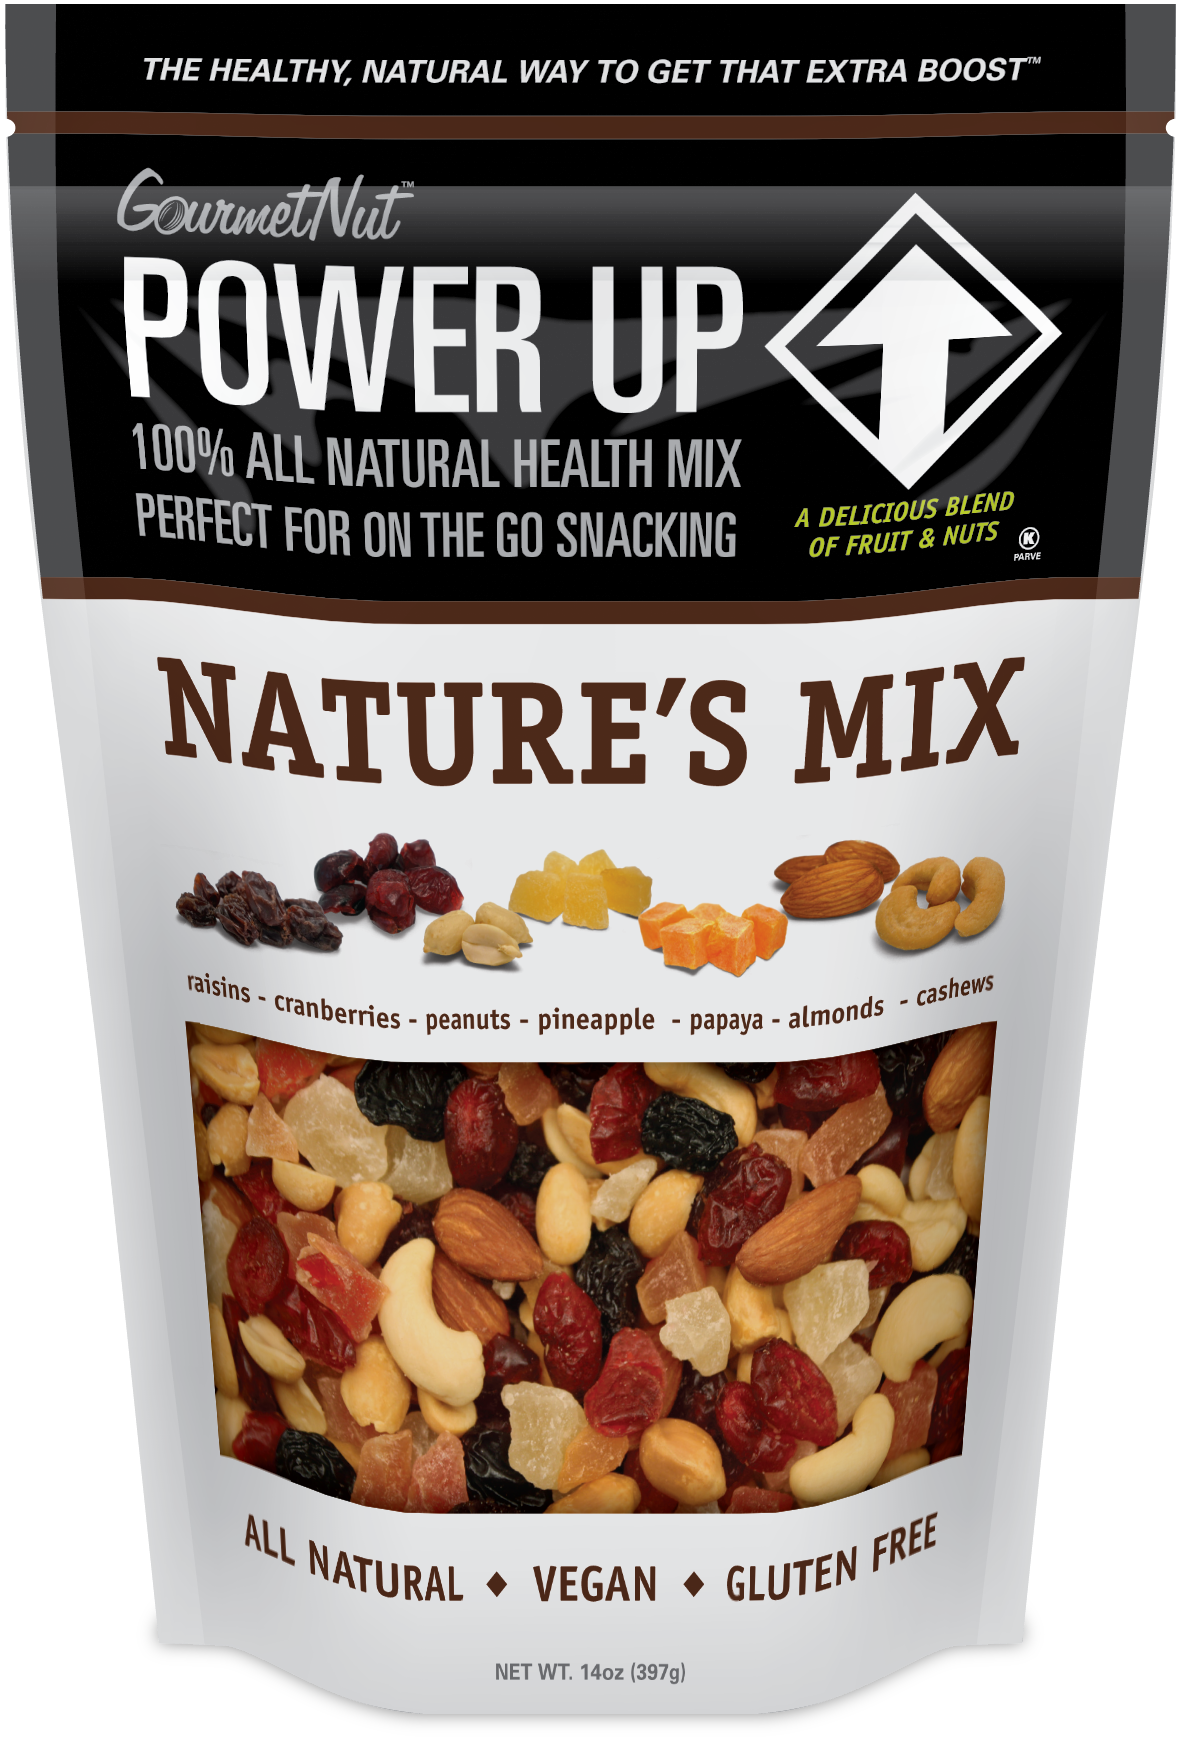 Nuts transparent healthy mix. Gourmet nut power up